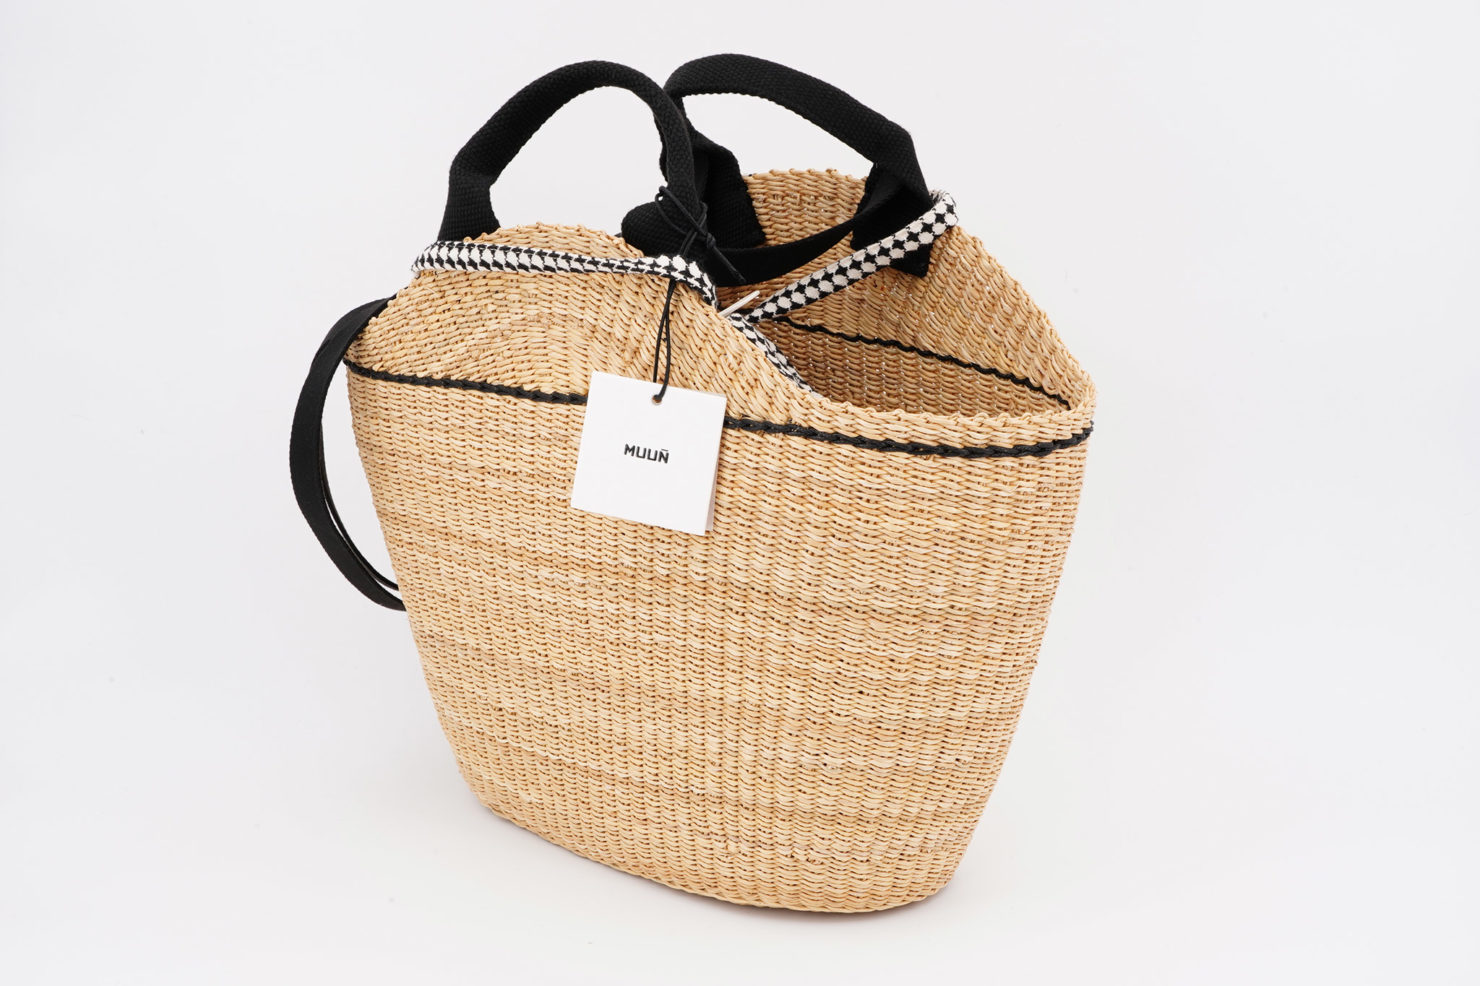 NATH DELFT STRAW BAG WITH REMOVABLE POUCH MUUN